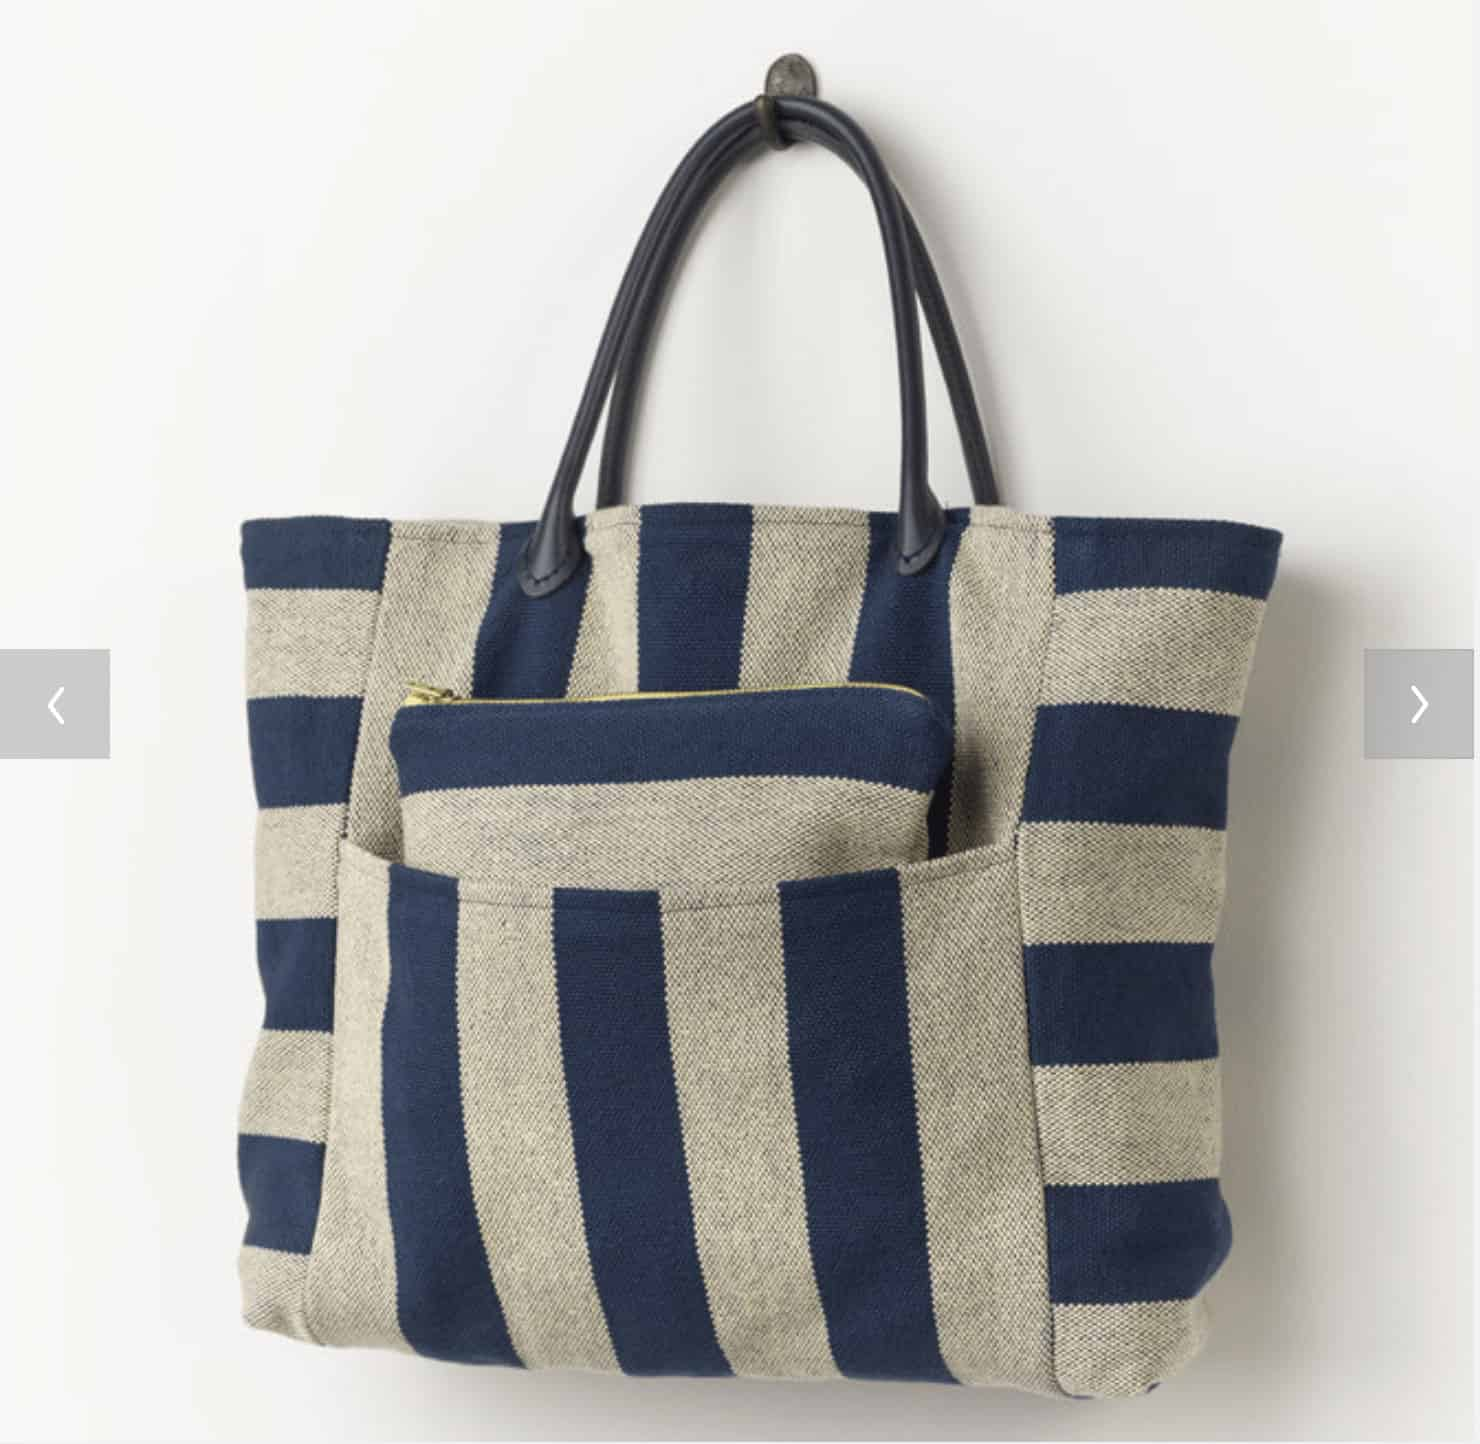 Bless Your Sol Tote Bag Navy copy